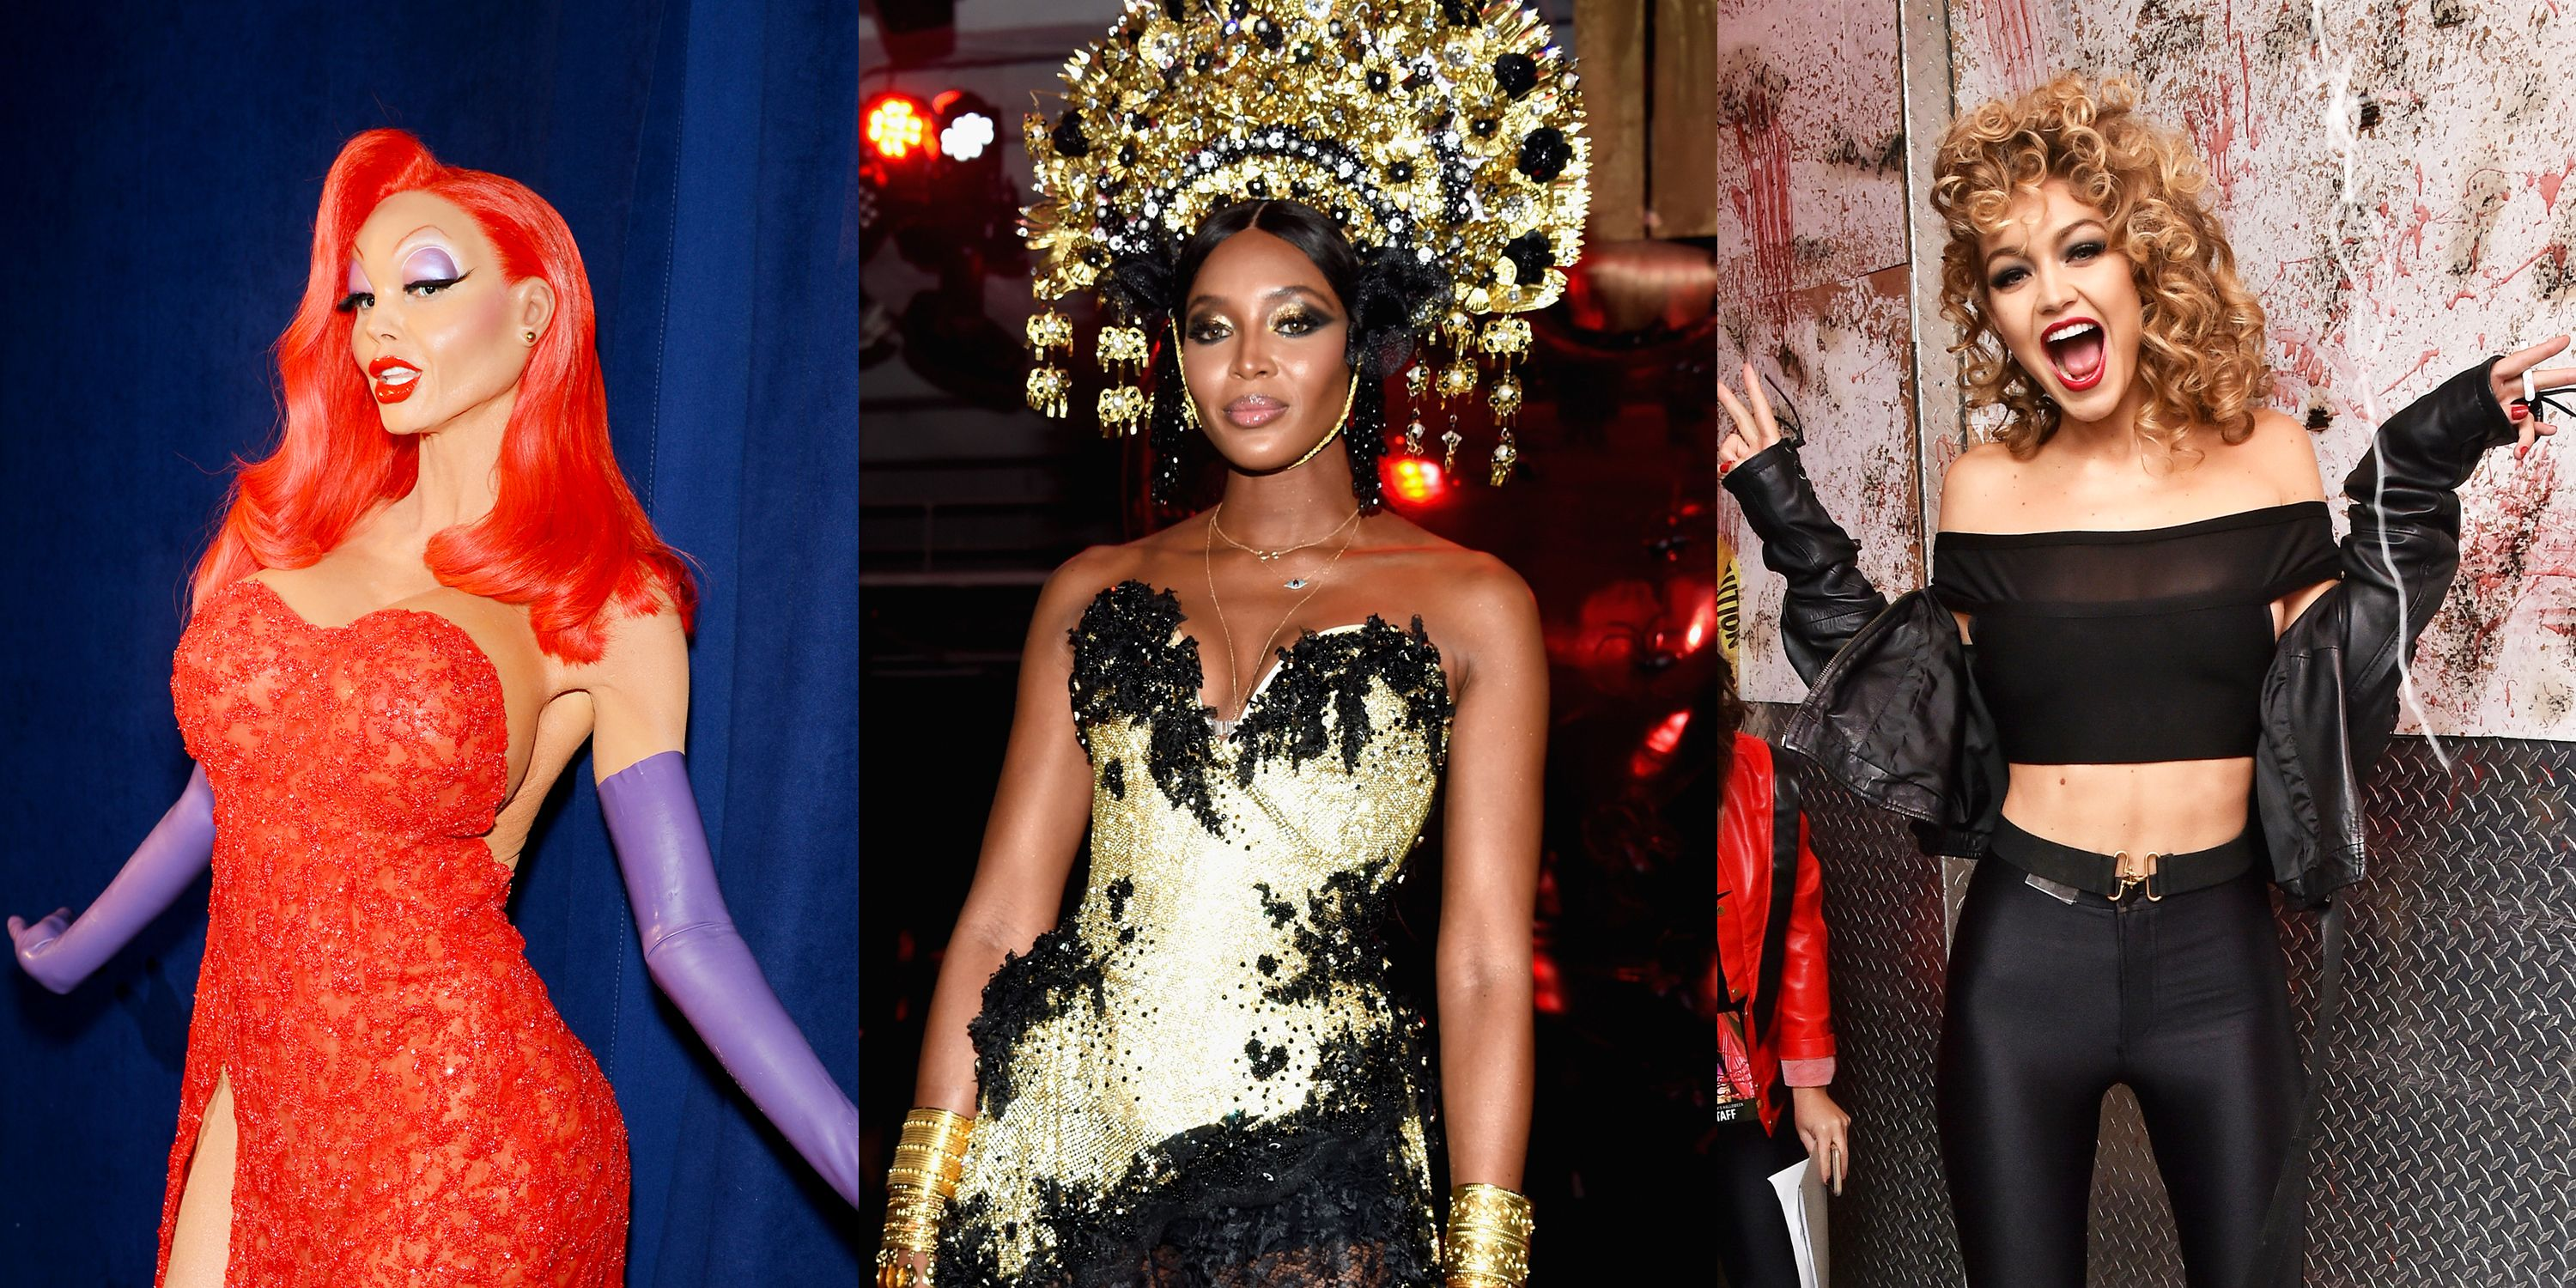 20 Best Celebrity Halloween Costumes Of All Time